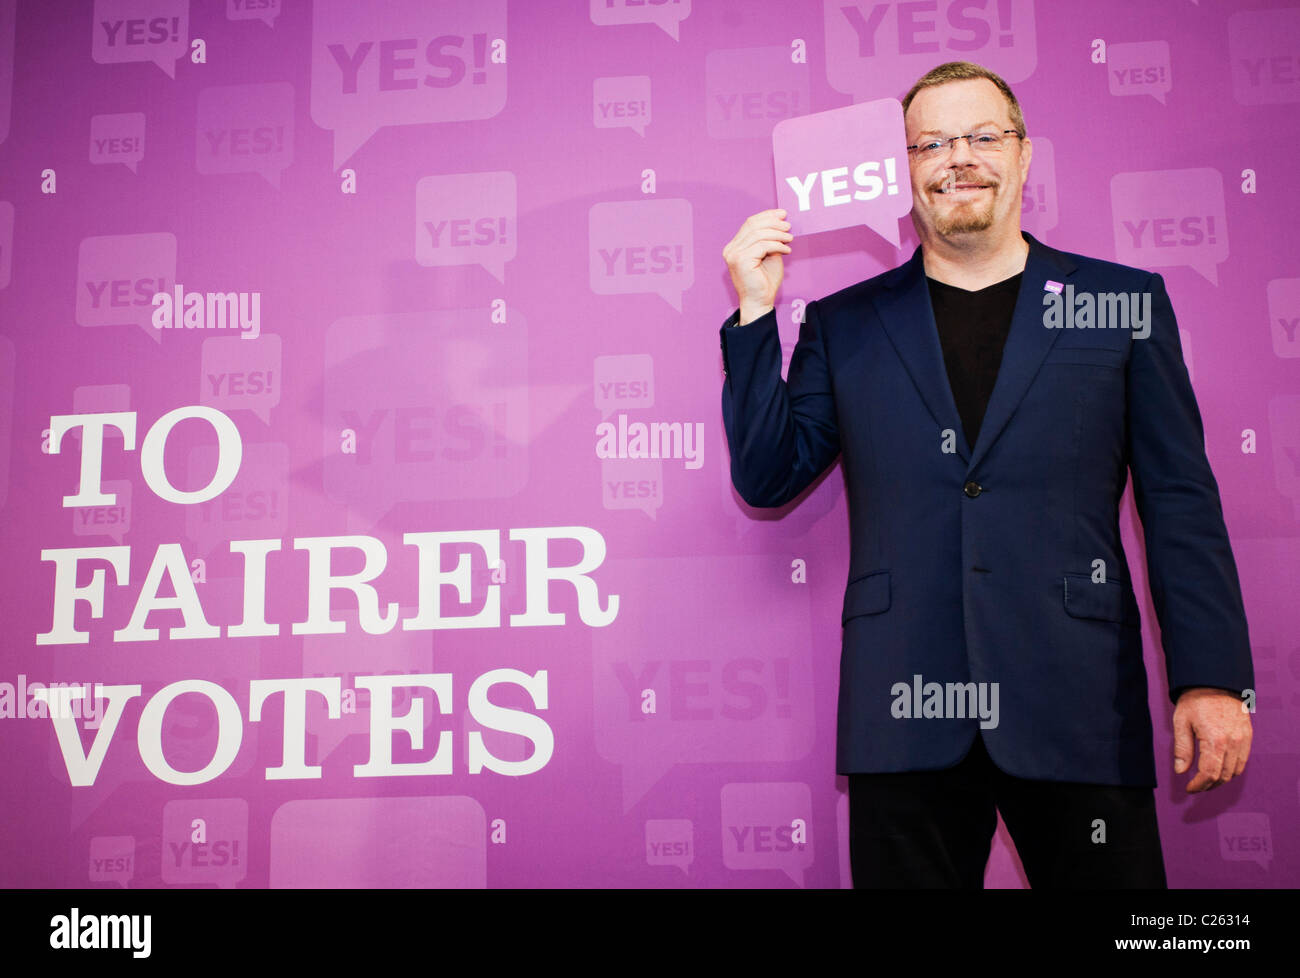 Eddie Izzard holds up a YES! card as he shows his support for the YES! to Fairer Votes campaign launched in London. - Stock Image